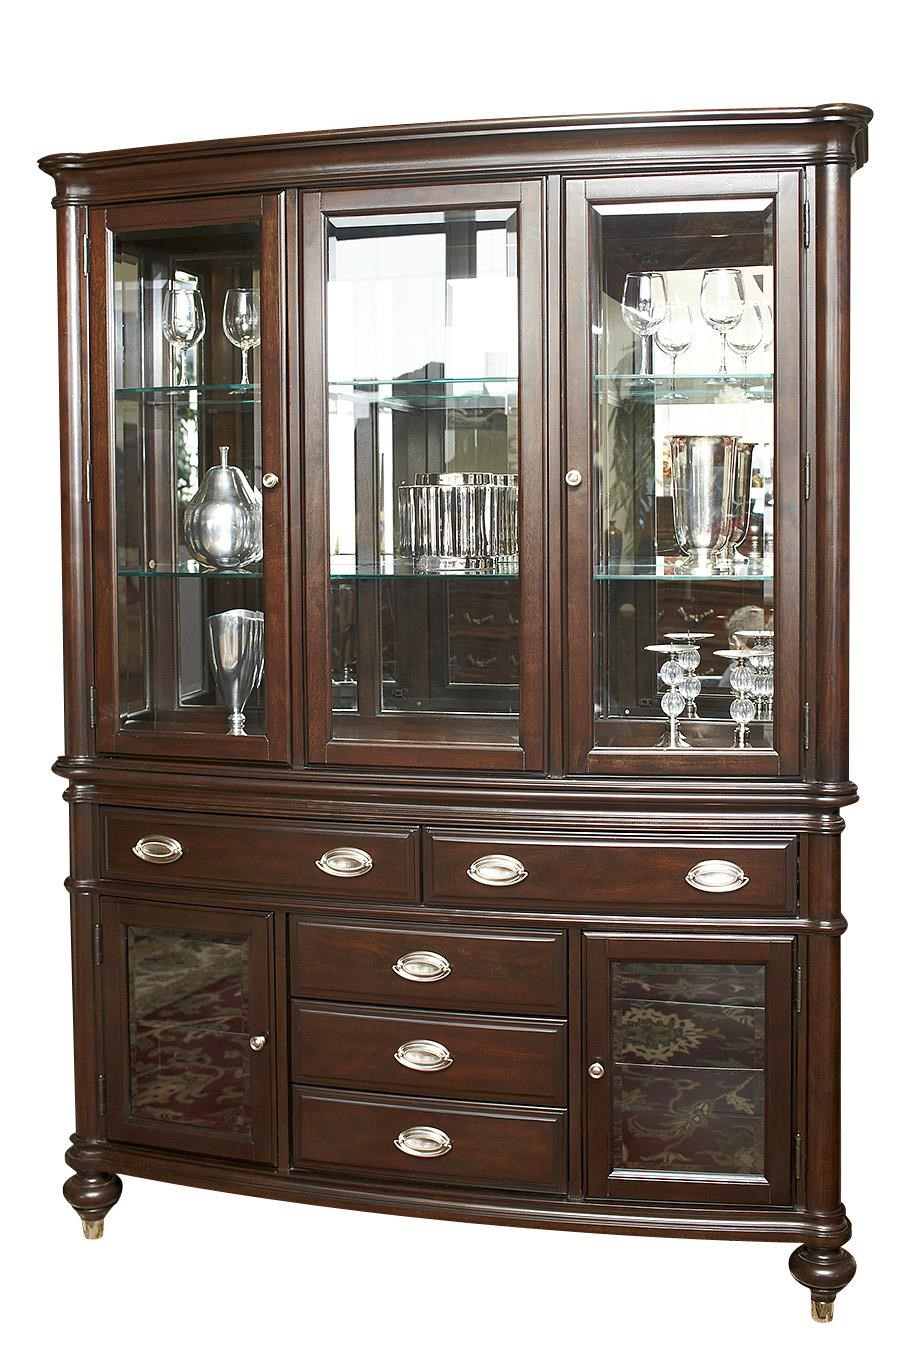 Beau Avalon Furniture Dundee Place Traditional China Cabinet With LED Lighting